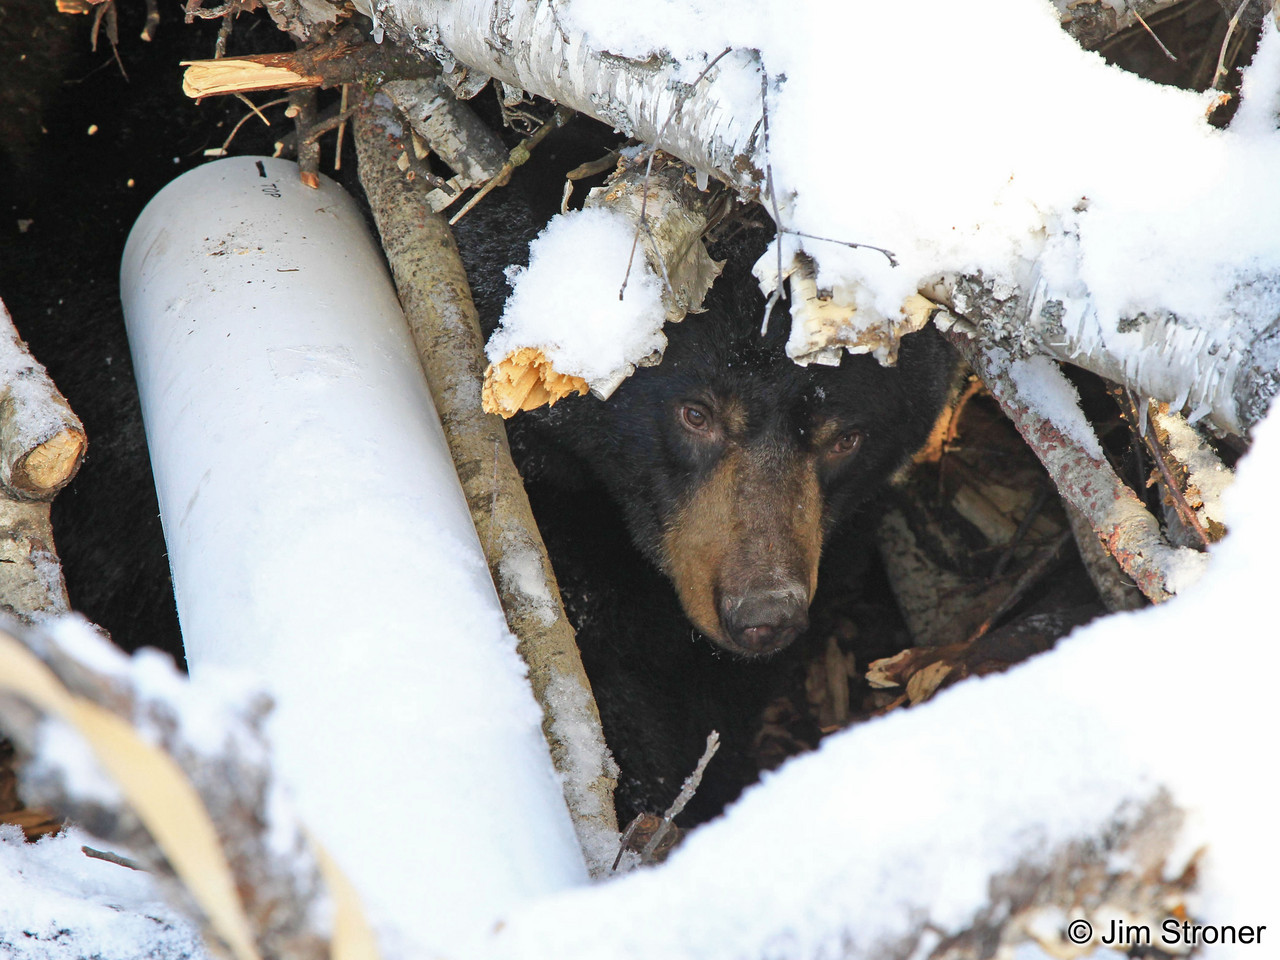 Lily the bear peeks out of her den earlier this year. She gave birth to twins on Jan. 12.